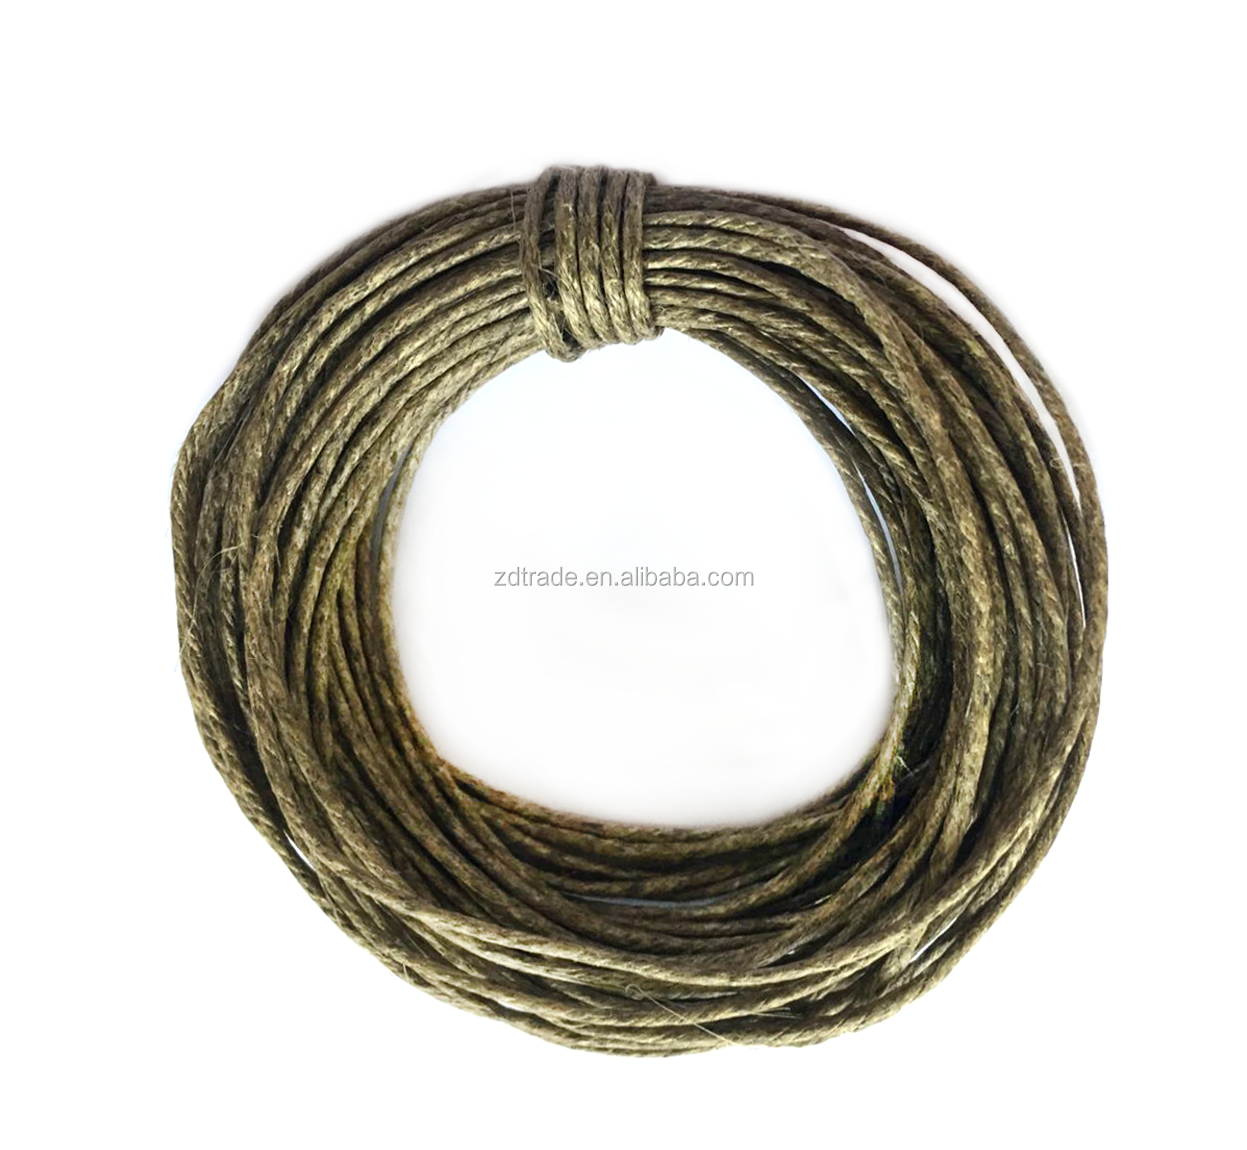 1.5mm 10Yards 100% Organic HEMP CORD STRING